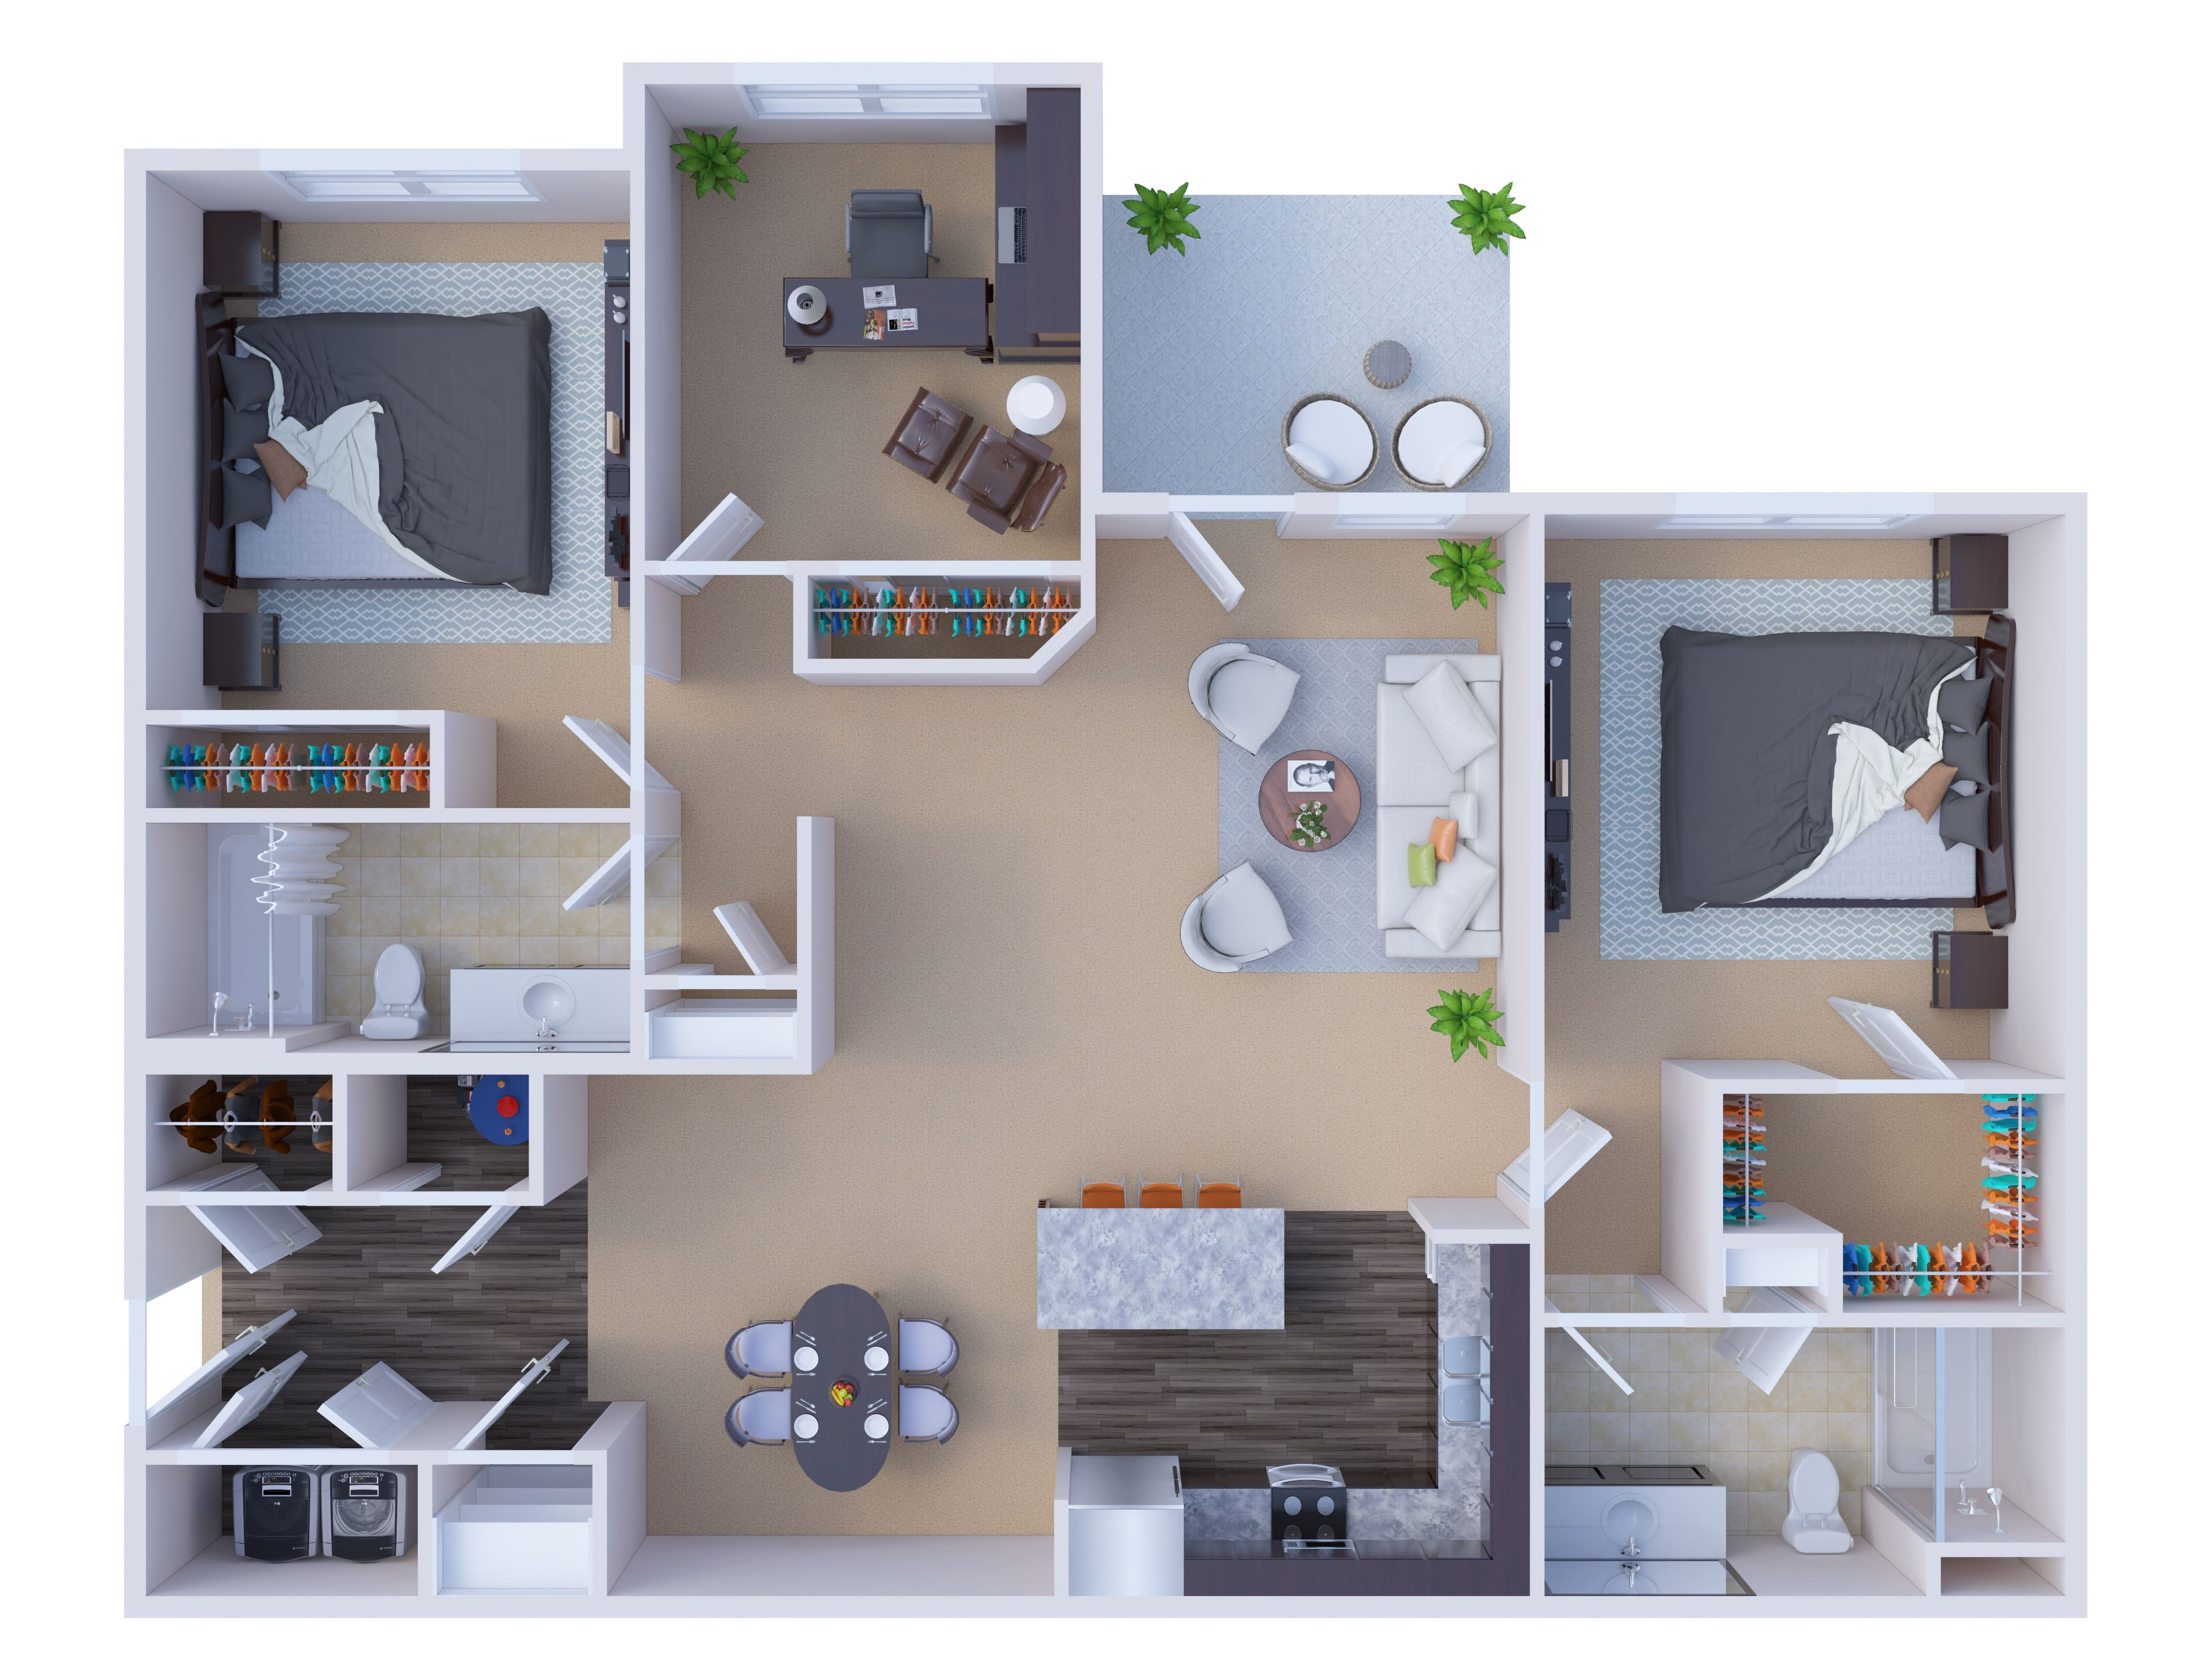 River Ridge Apartments - Floorplan - MacKenzie